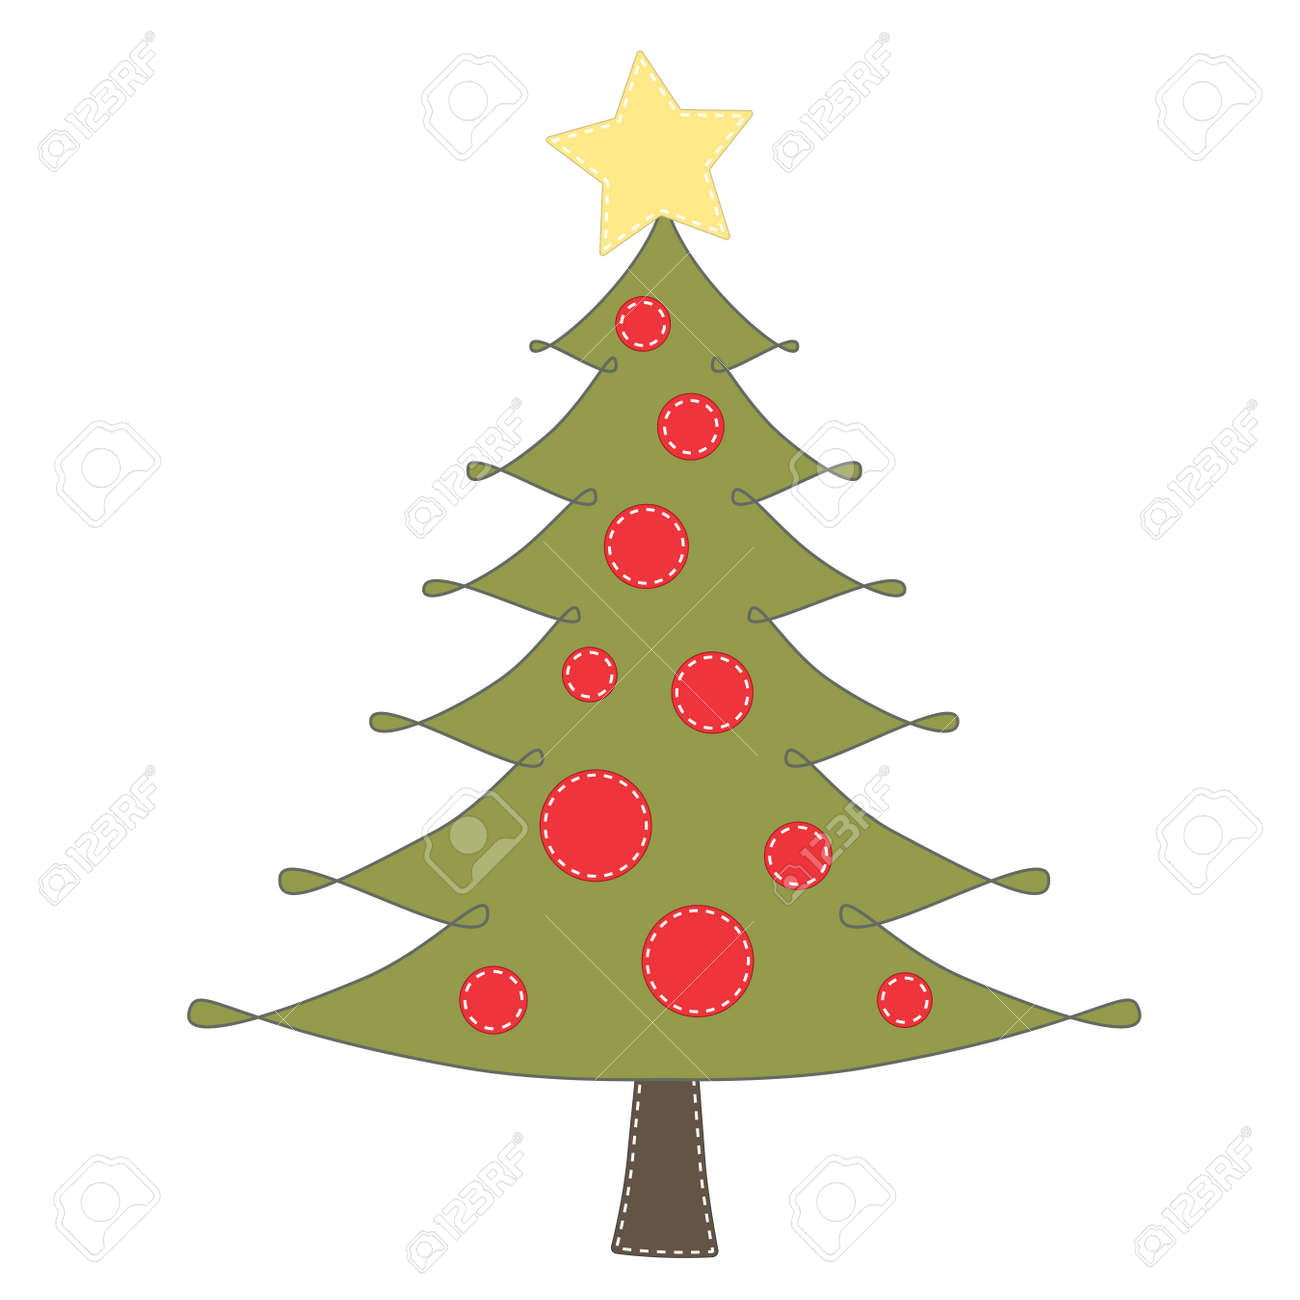 Christmas Tree Clip Art On Transparent Background For Scrapbooking ...